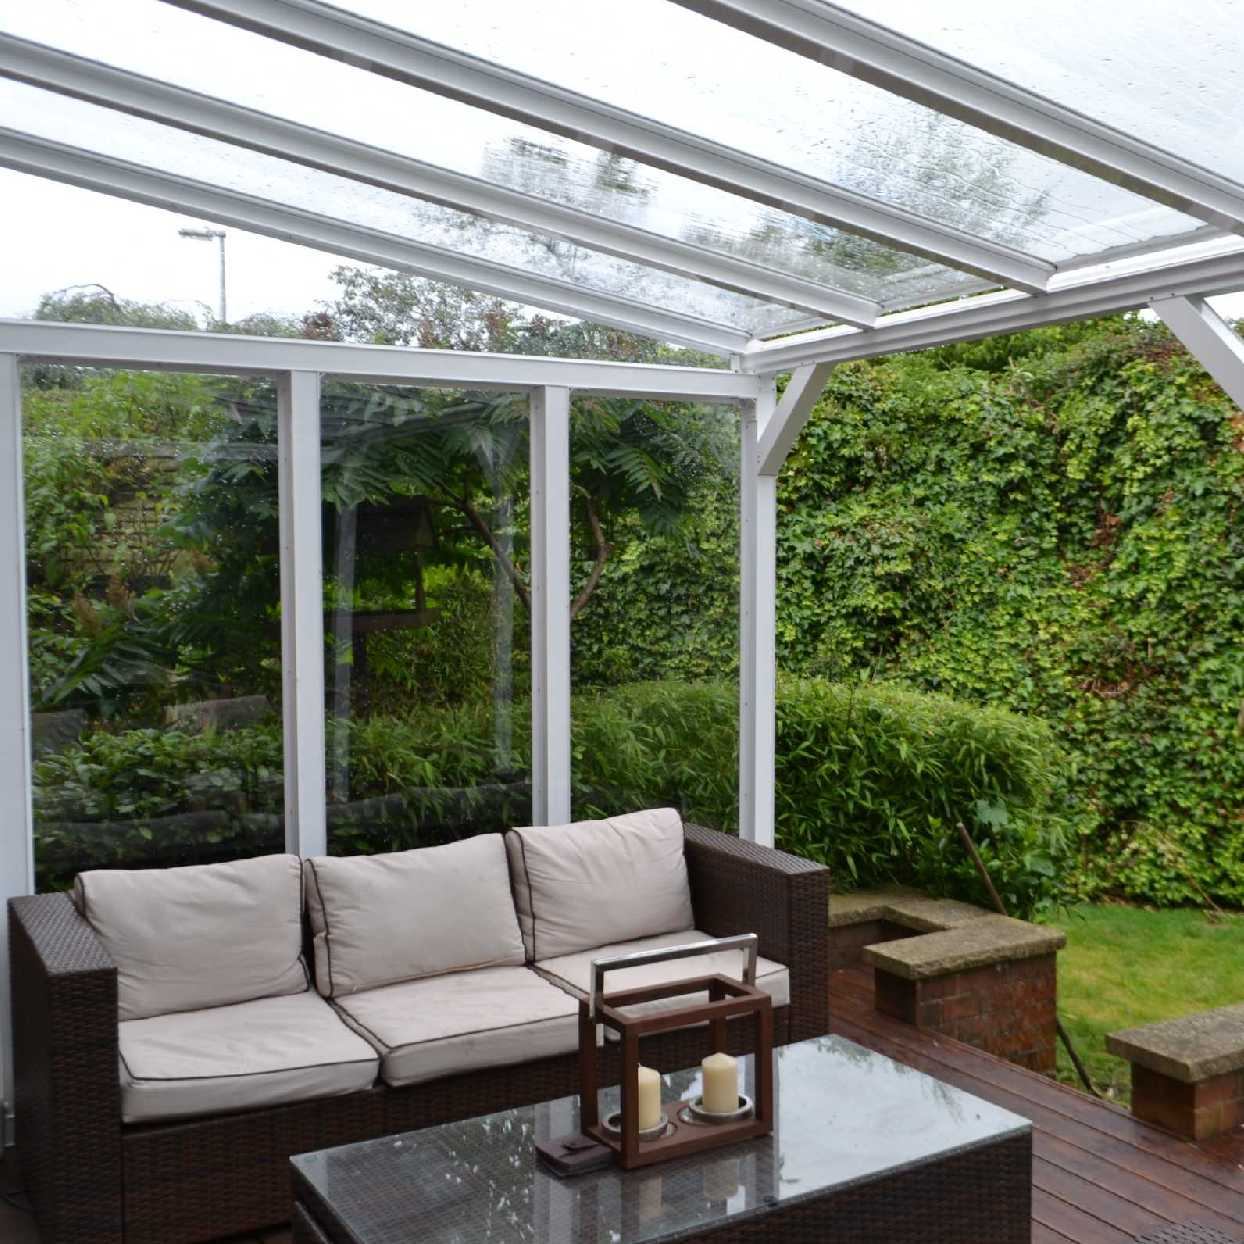 Omega Smart Lean-To Canopy with 6mm Glass Clear Plate Polycarbonate Glazing - 7.7m (W) x 2.5m (P), (4) Supporting Posts